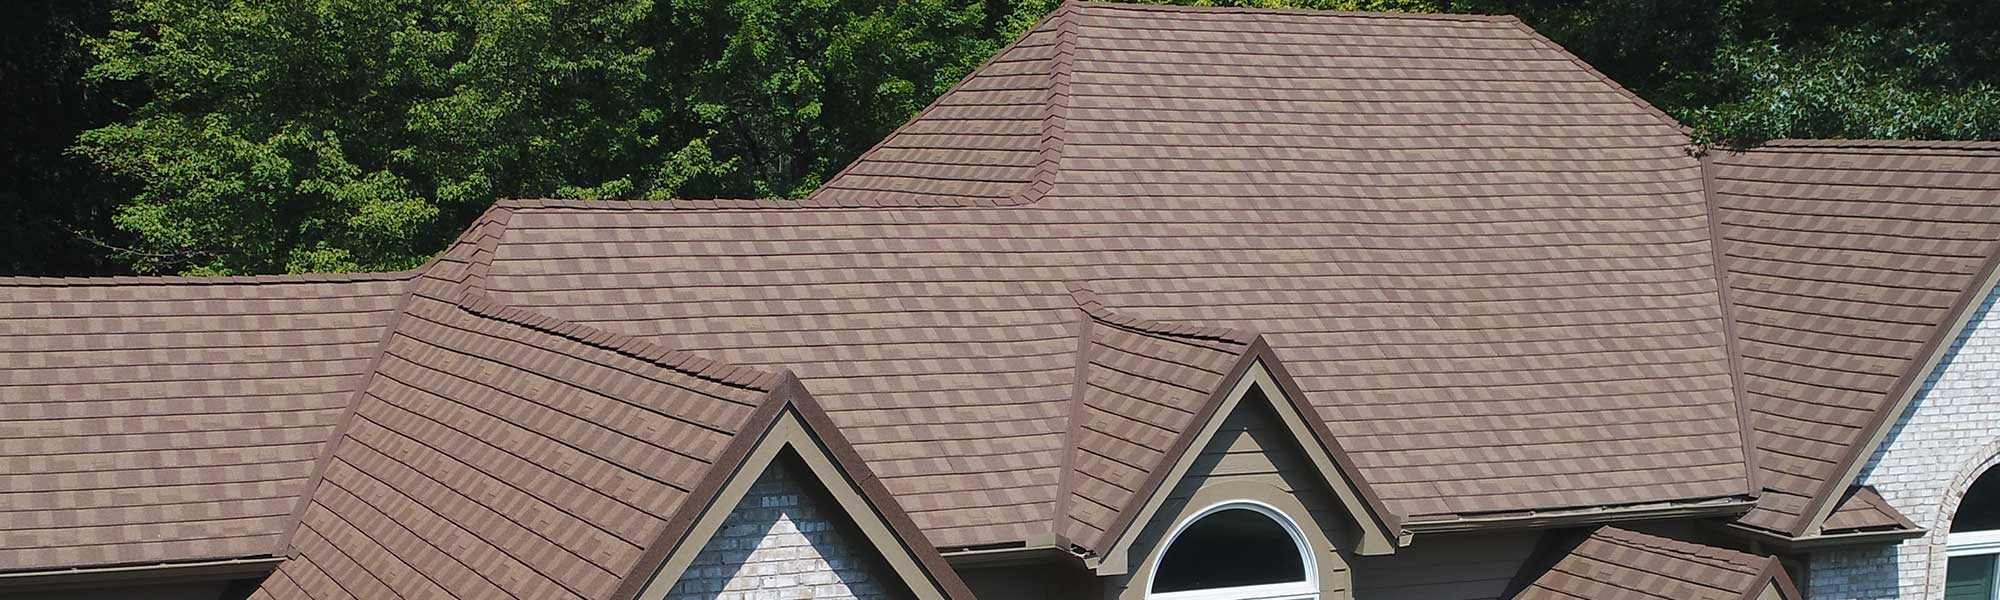 Metal Roofing Home Improvement Erie Construction